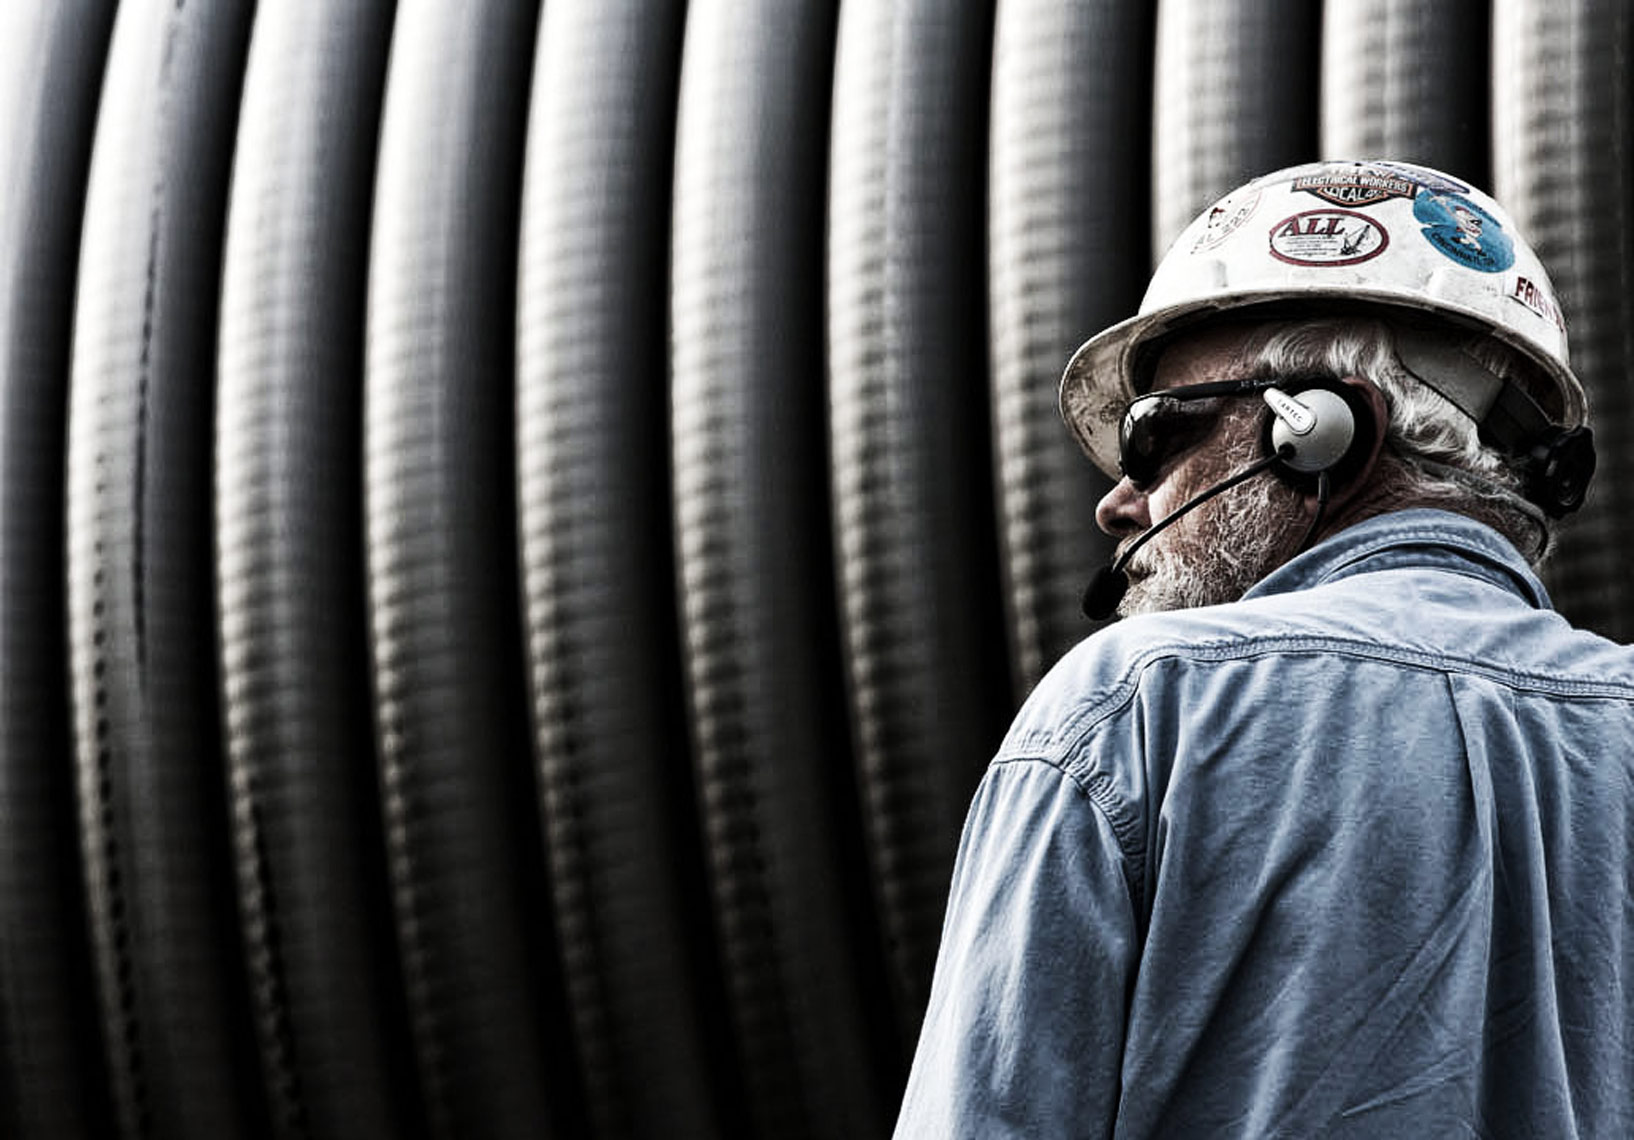 Industrial photo of man with large spool of cable